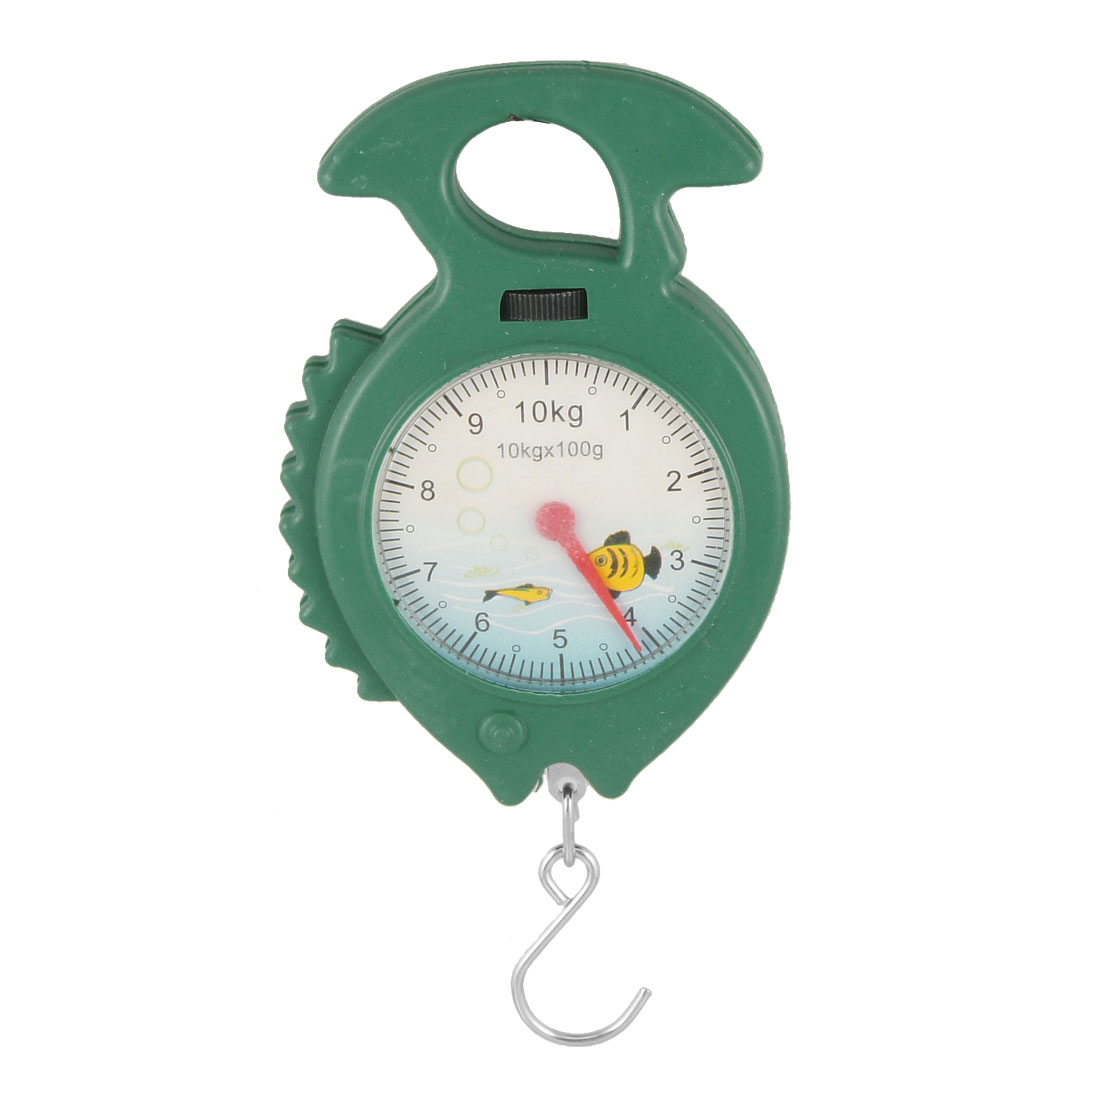 10Kg Arabic Number Display Spring Scale Weighter Green